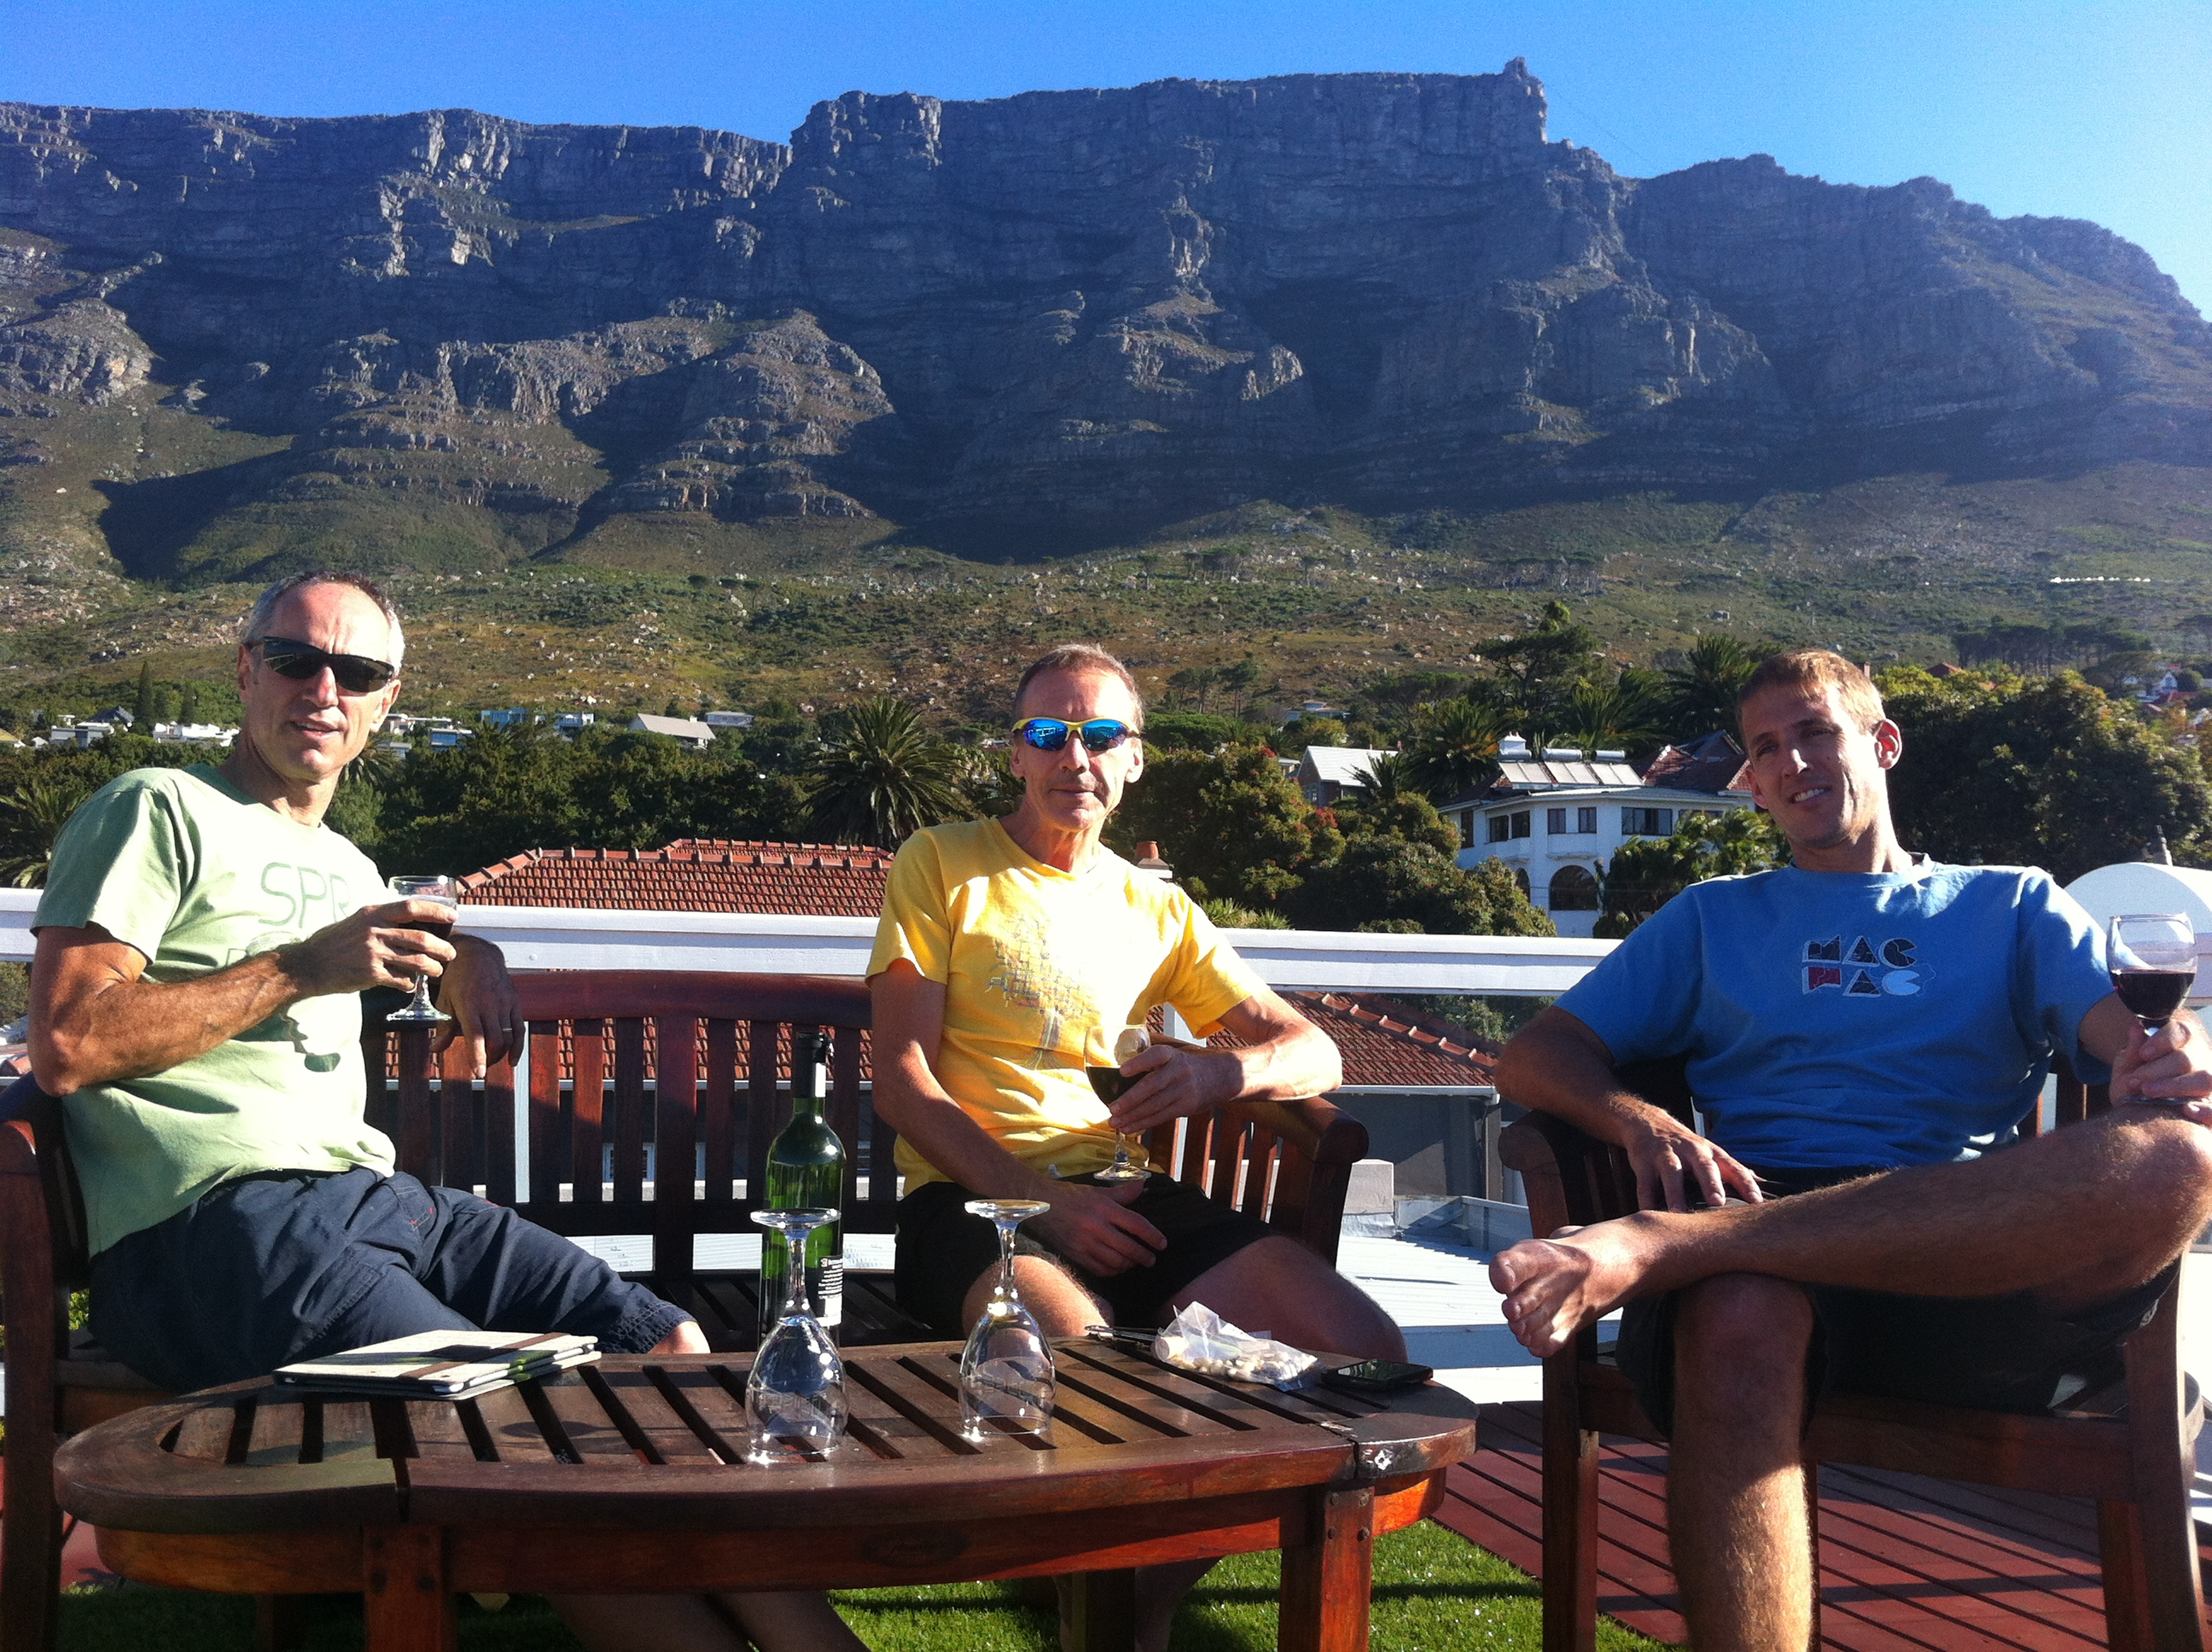 rehydrating after the Tour de Boland, Cape Town B&B, Friday 6th March 2015